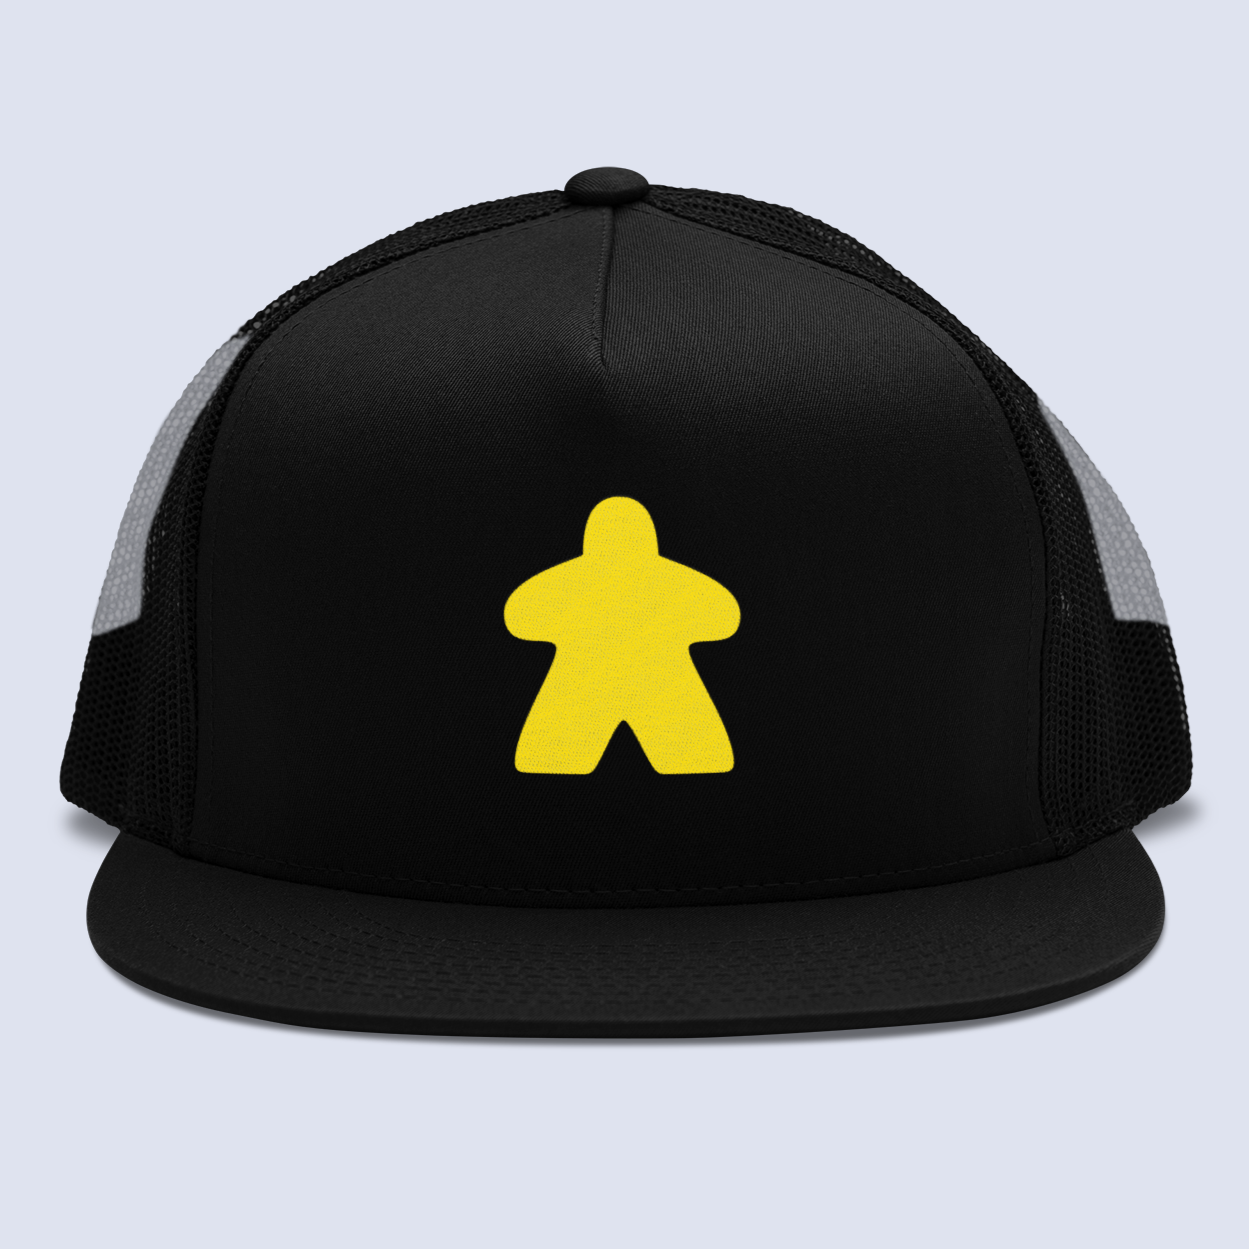 Yellow Meeple Board Game Flat Bill Trucker Hat